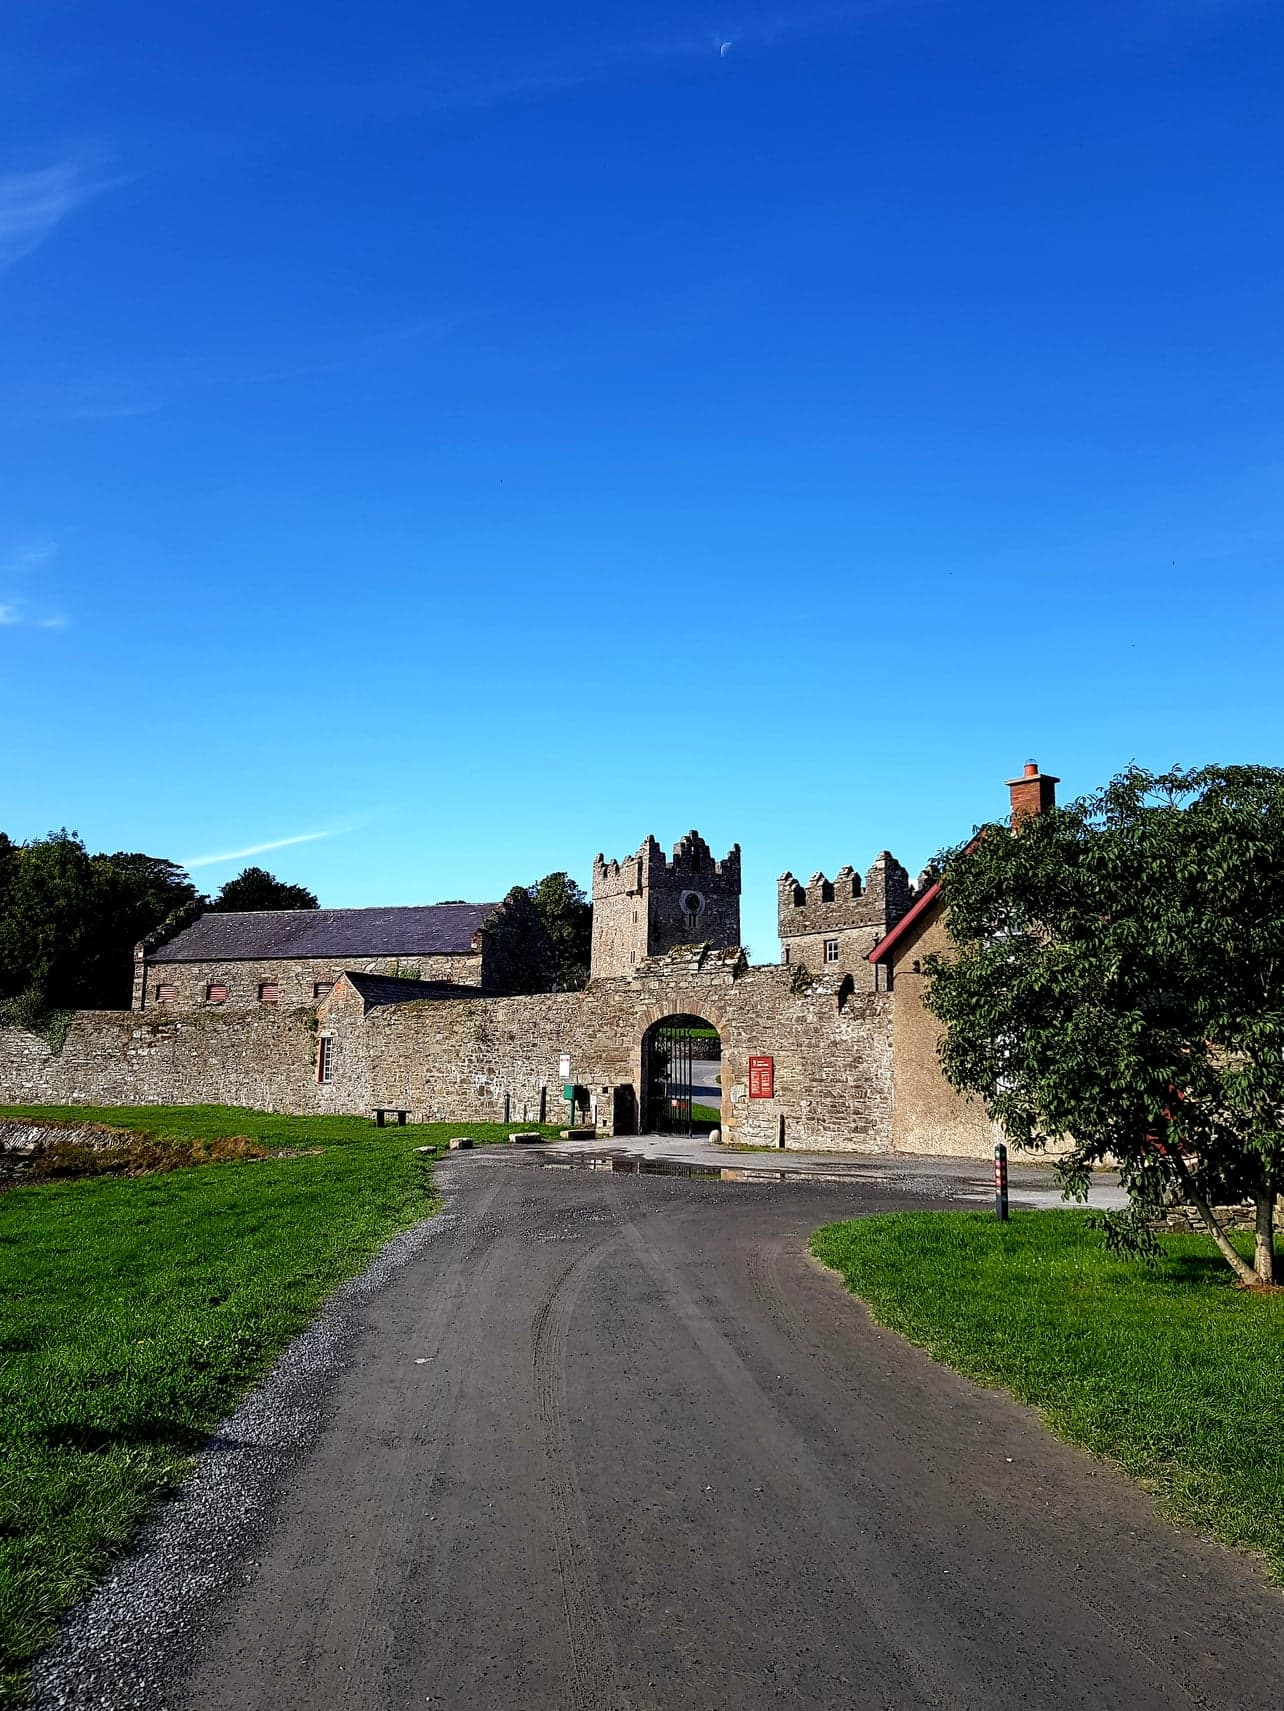 road leading to winterfell, featuring tower buildings and a wall surrounding the area